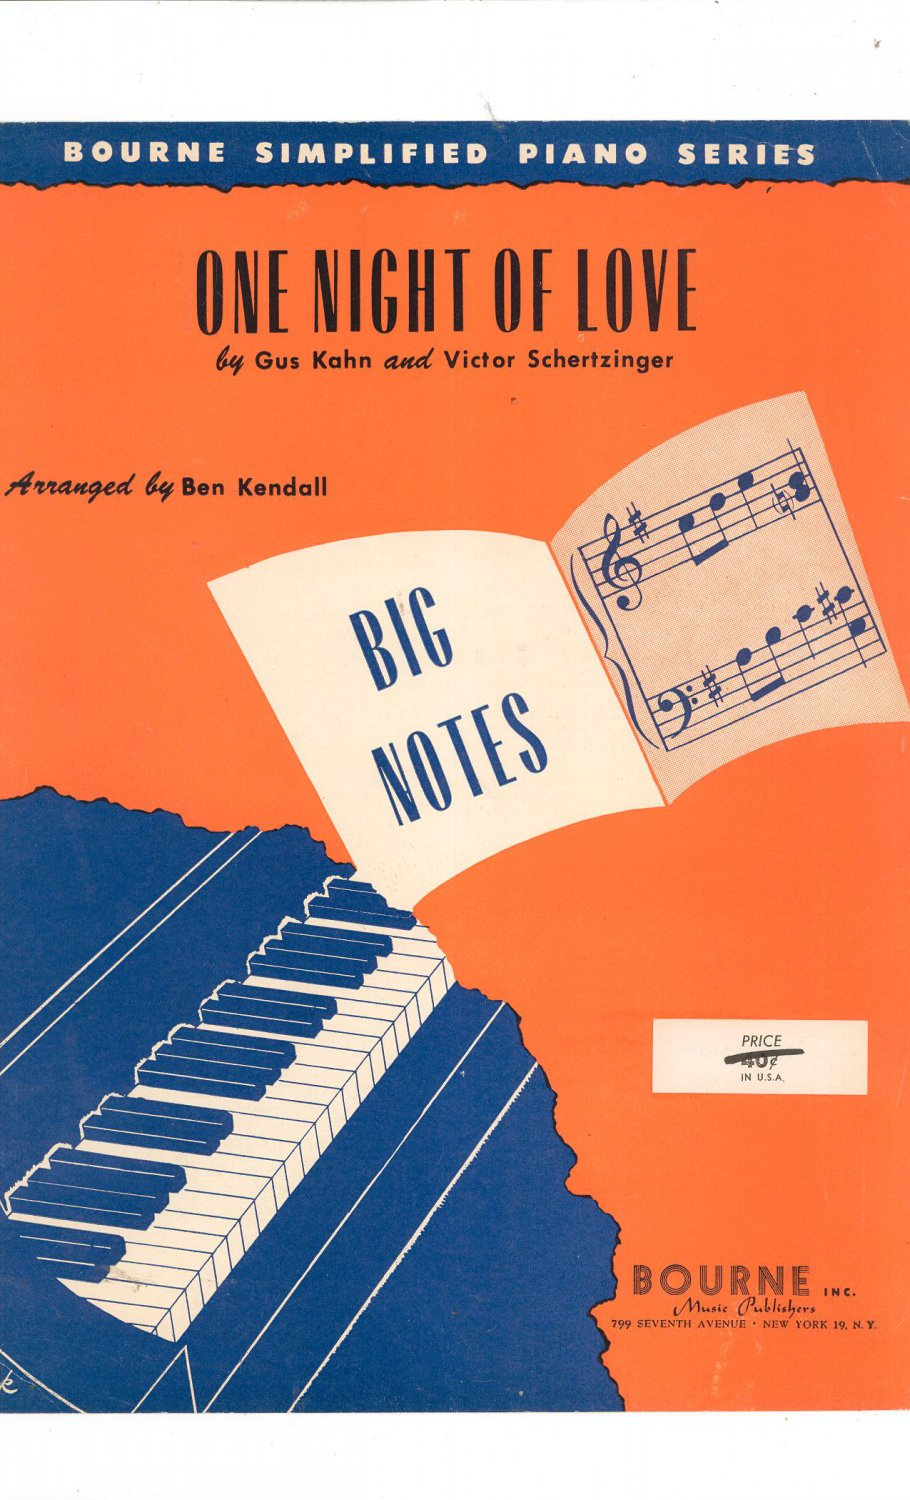 One Night Of Love Piano Sheet Music Vintage Bourne Inc.